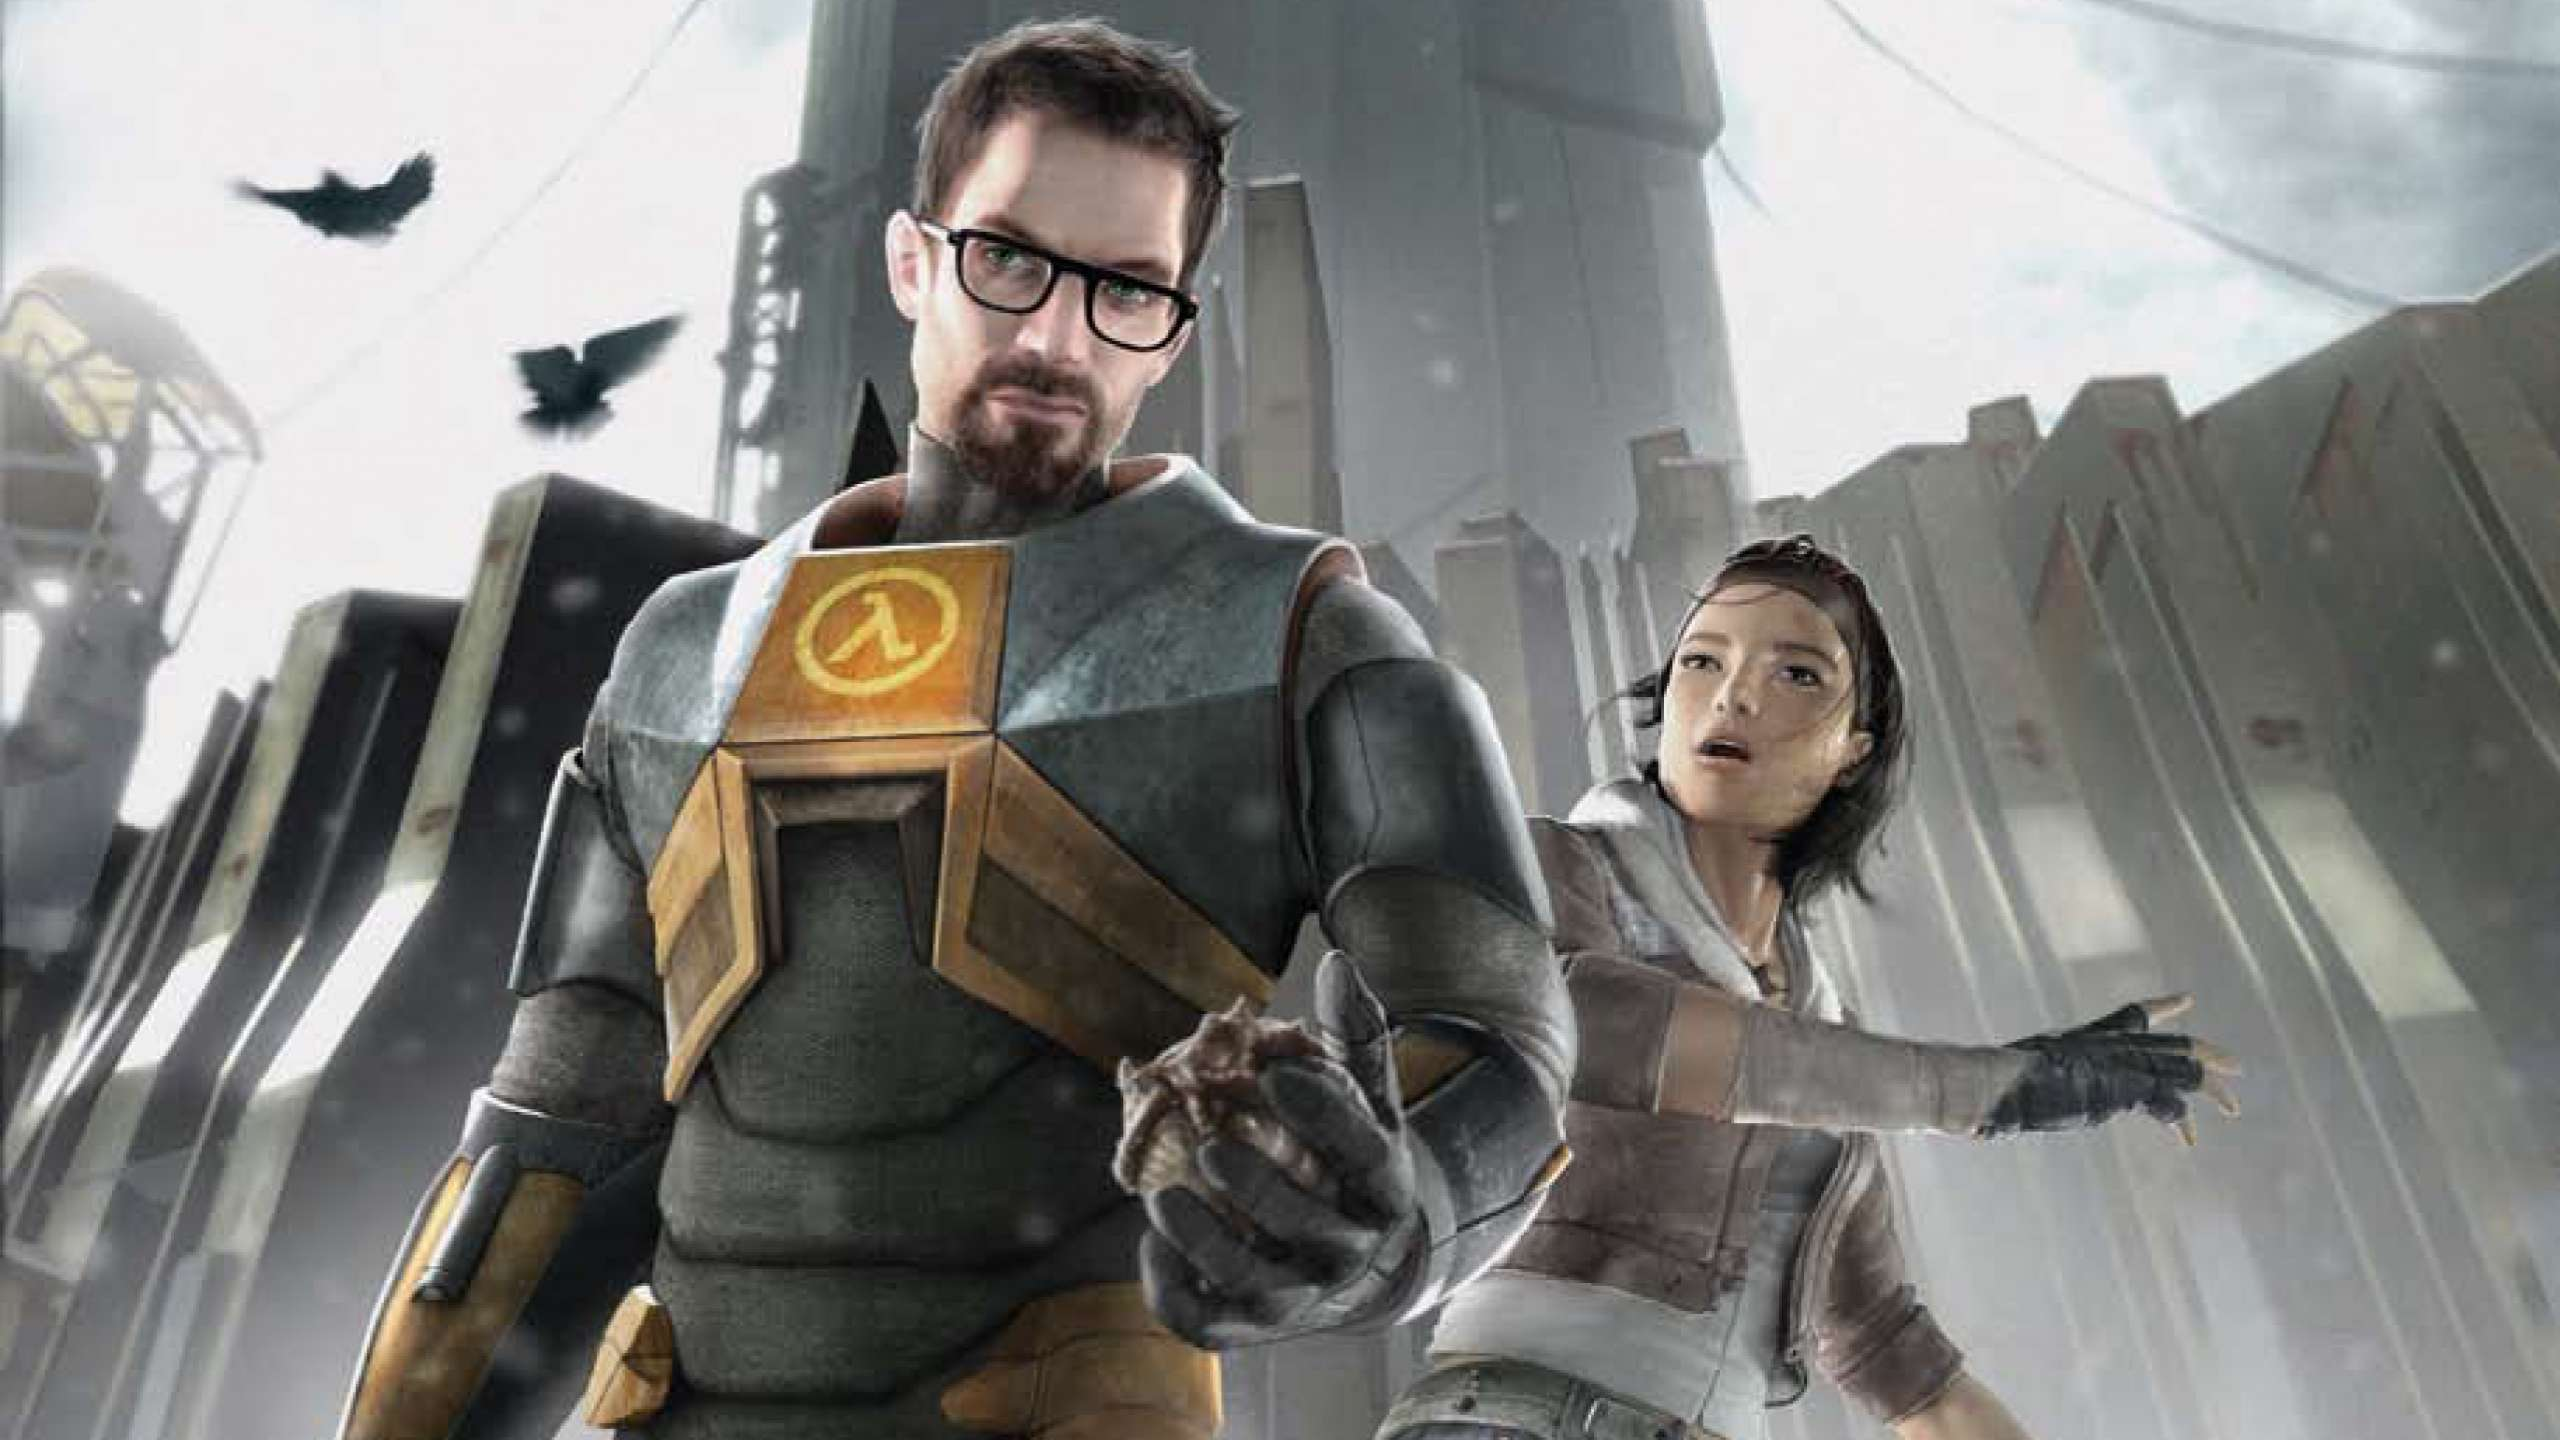 Valve Possibly Making More Half-Life Games After New VR Title Half-Life: Alyx